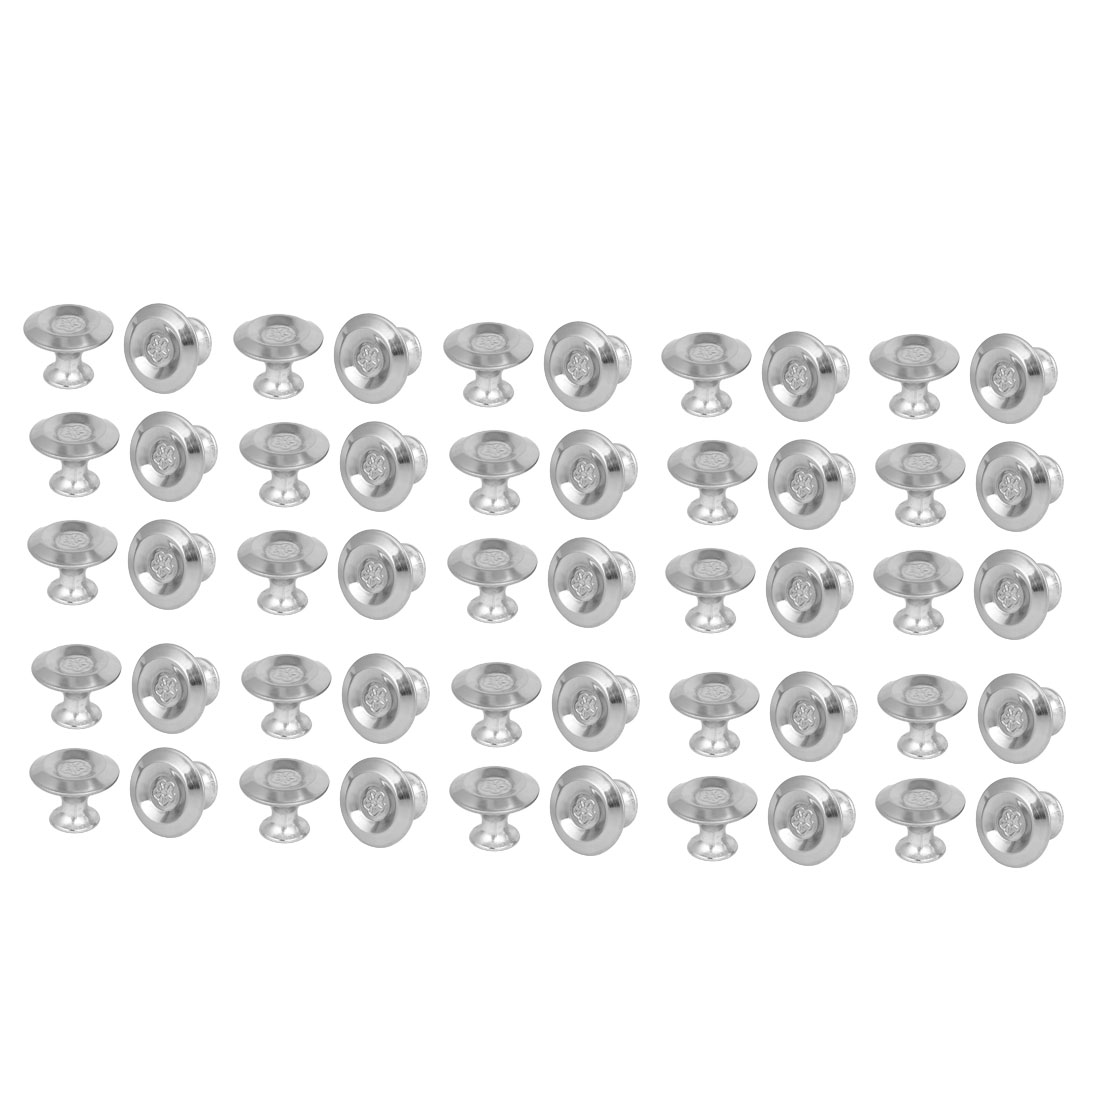 Cabinet Drawer Metal Single Hole Flower Pattern Pull Knobs 27.5mmx20mm 50pcs